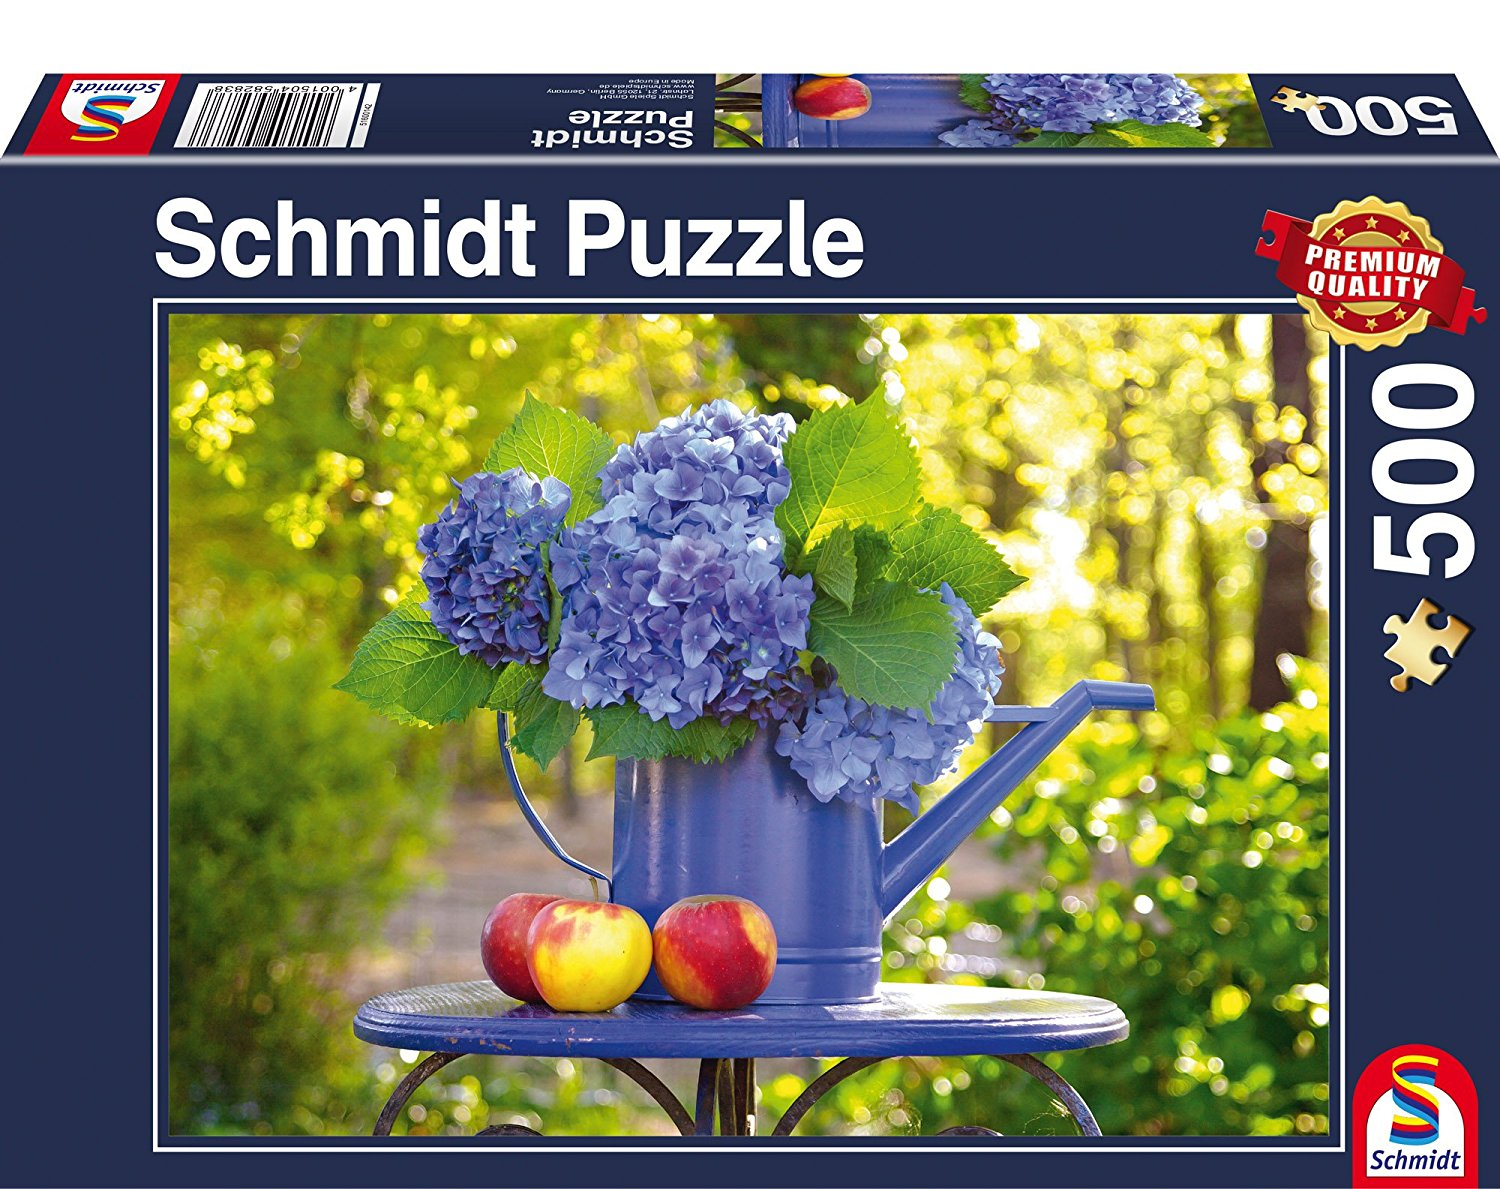 gie kanne mit hortensie 500 teile schmidt spiele puzzle online kaufen. Black Bedroom Furniture Sets. Home Design Ideas